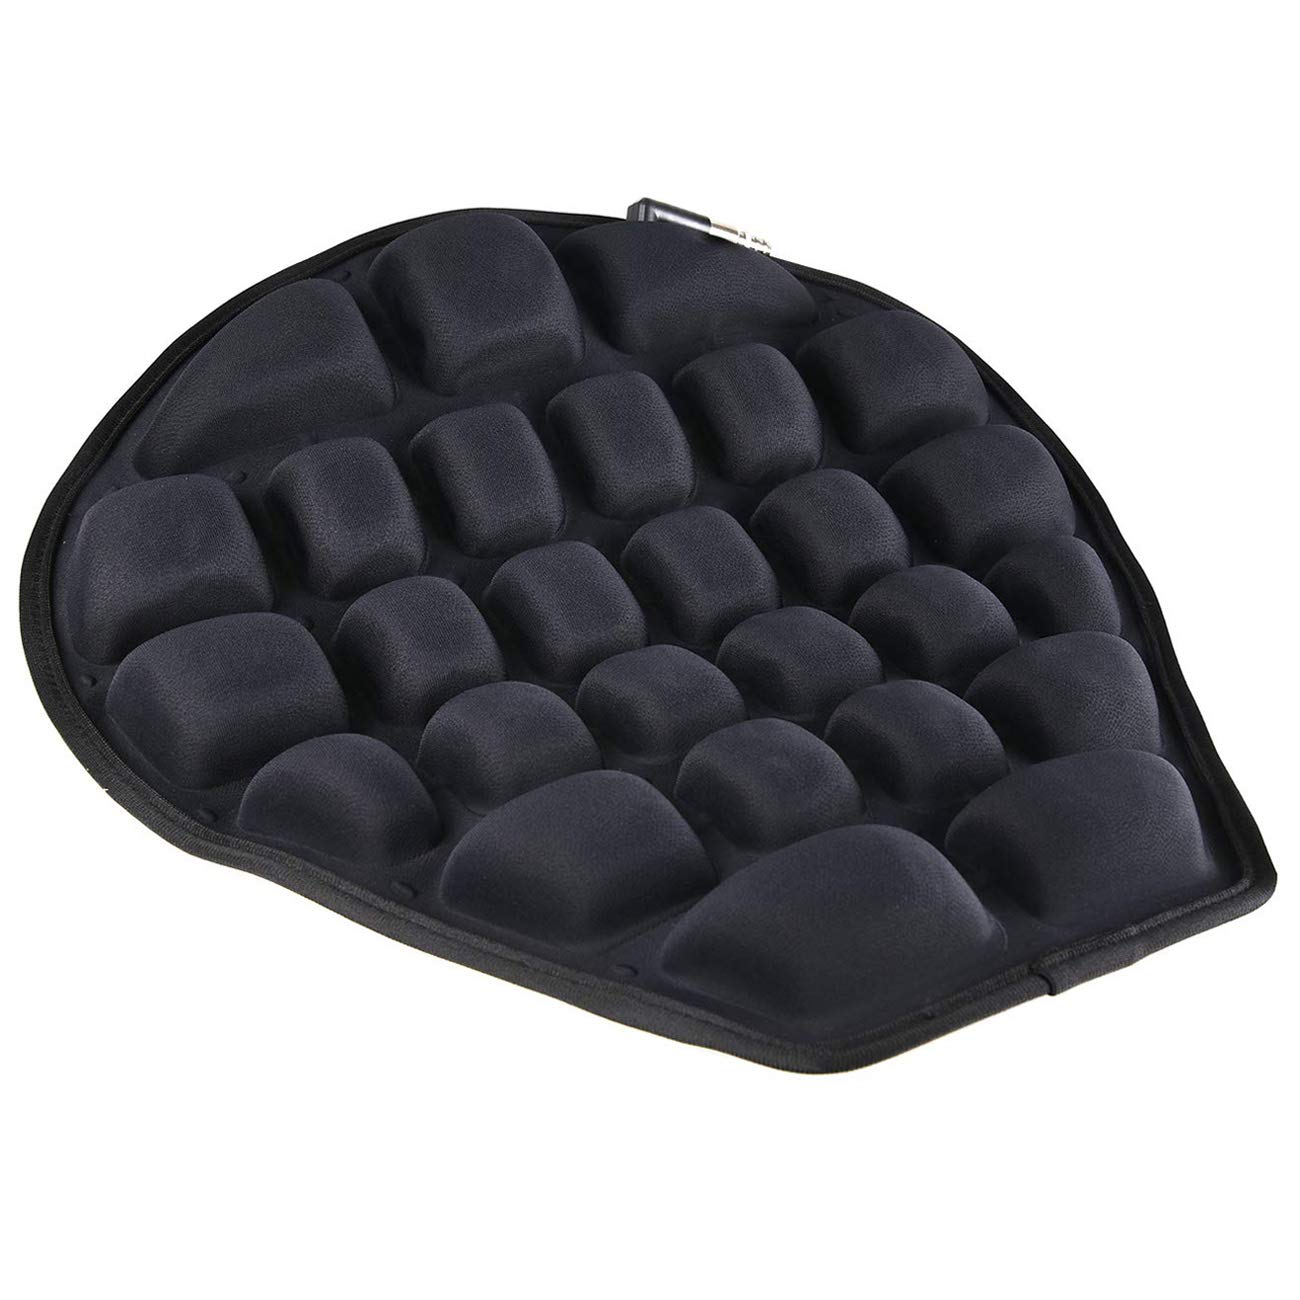 HOMMIESAFE Air Motorcycle Seat Cushion Water Fillable Cooling Down Seat Pad,Pressure Relief Ride Motorcycle Air Cushion Large for Cruiser Touring Saddles